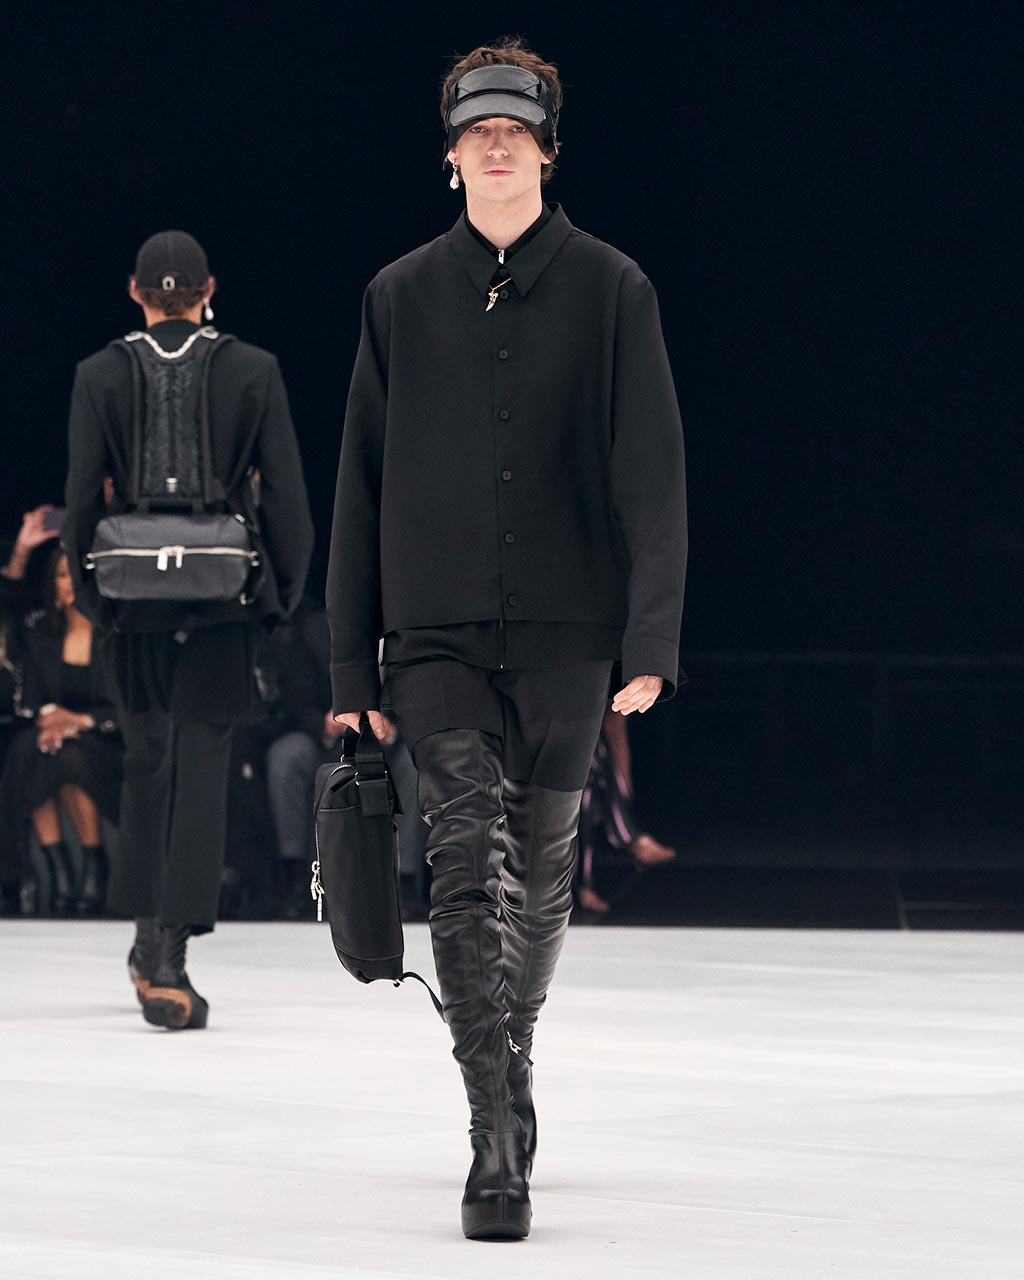 Spring Summer 2022 collection Look 12